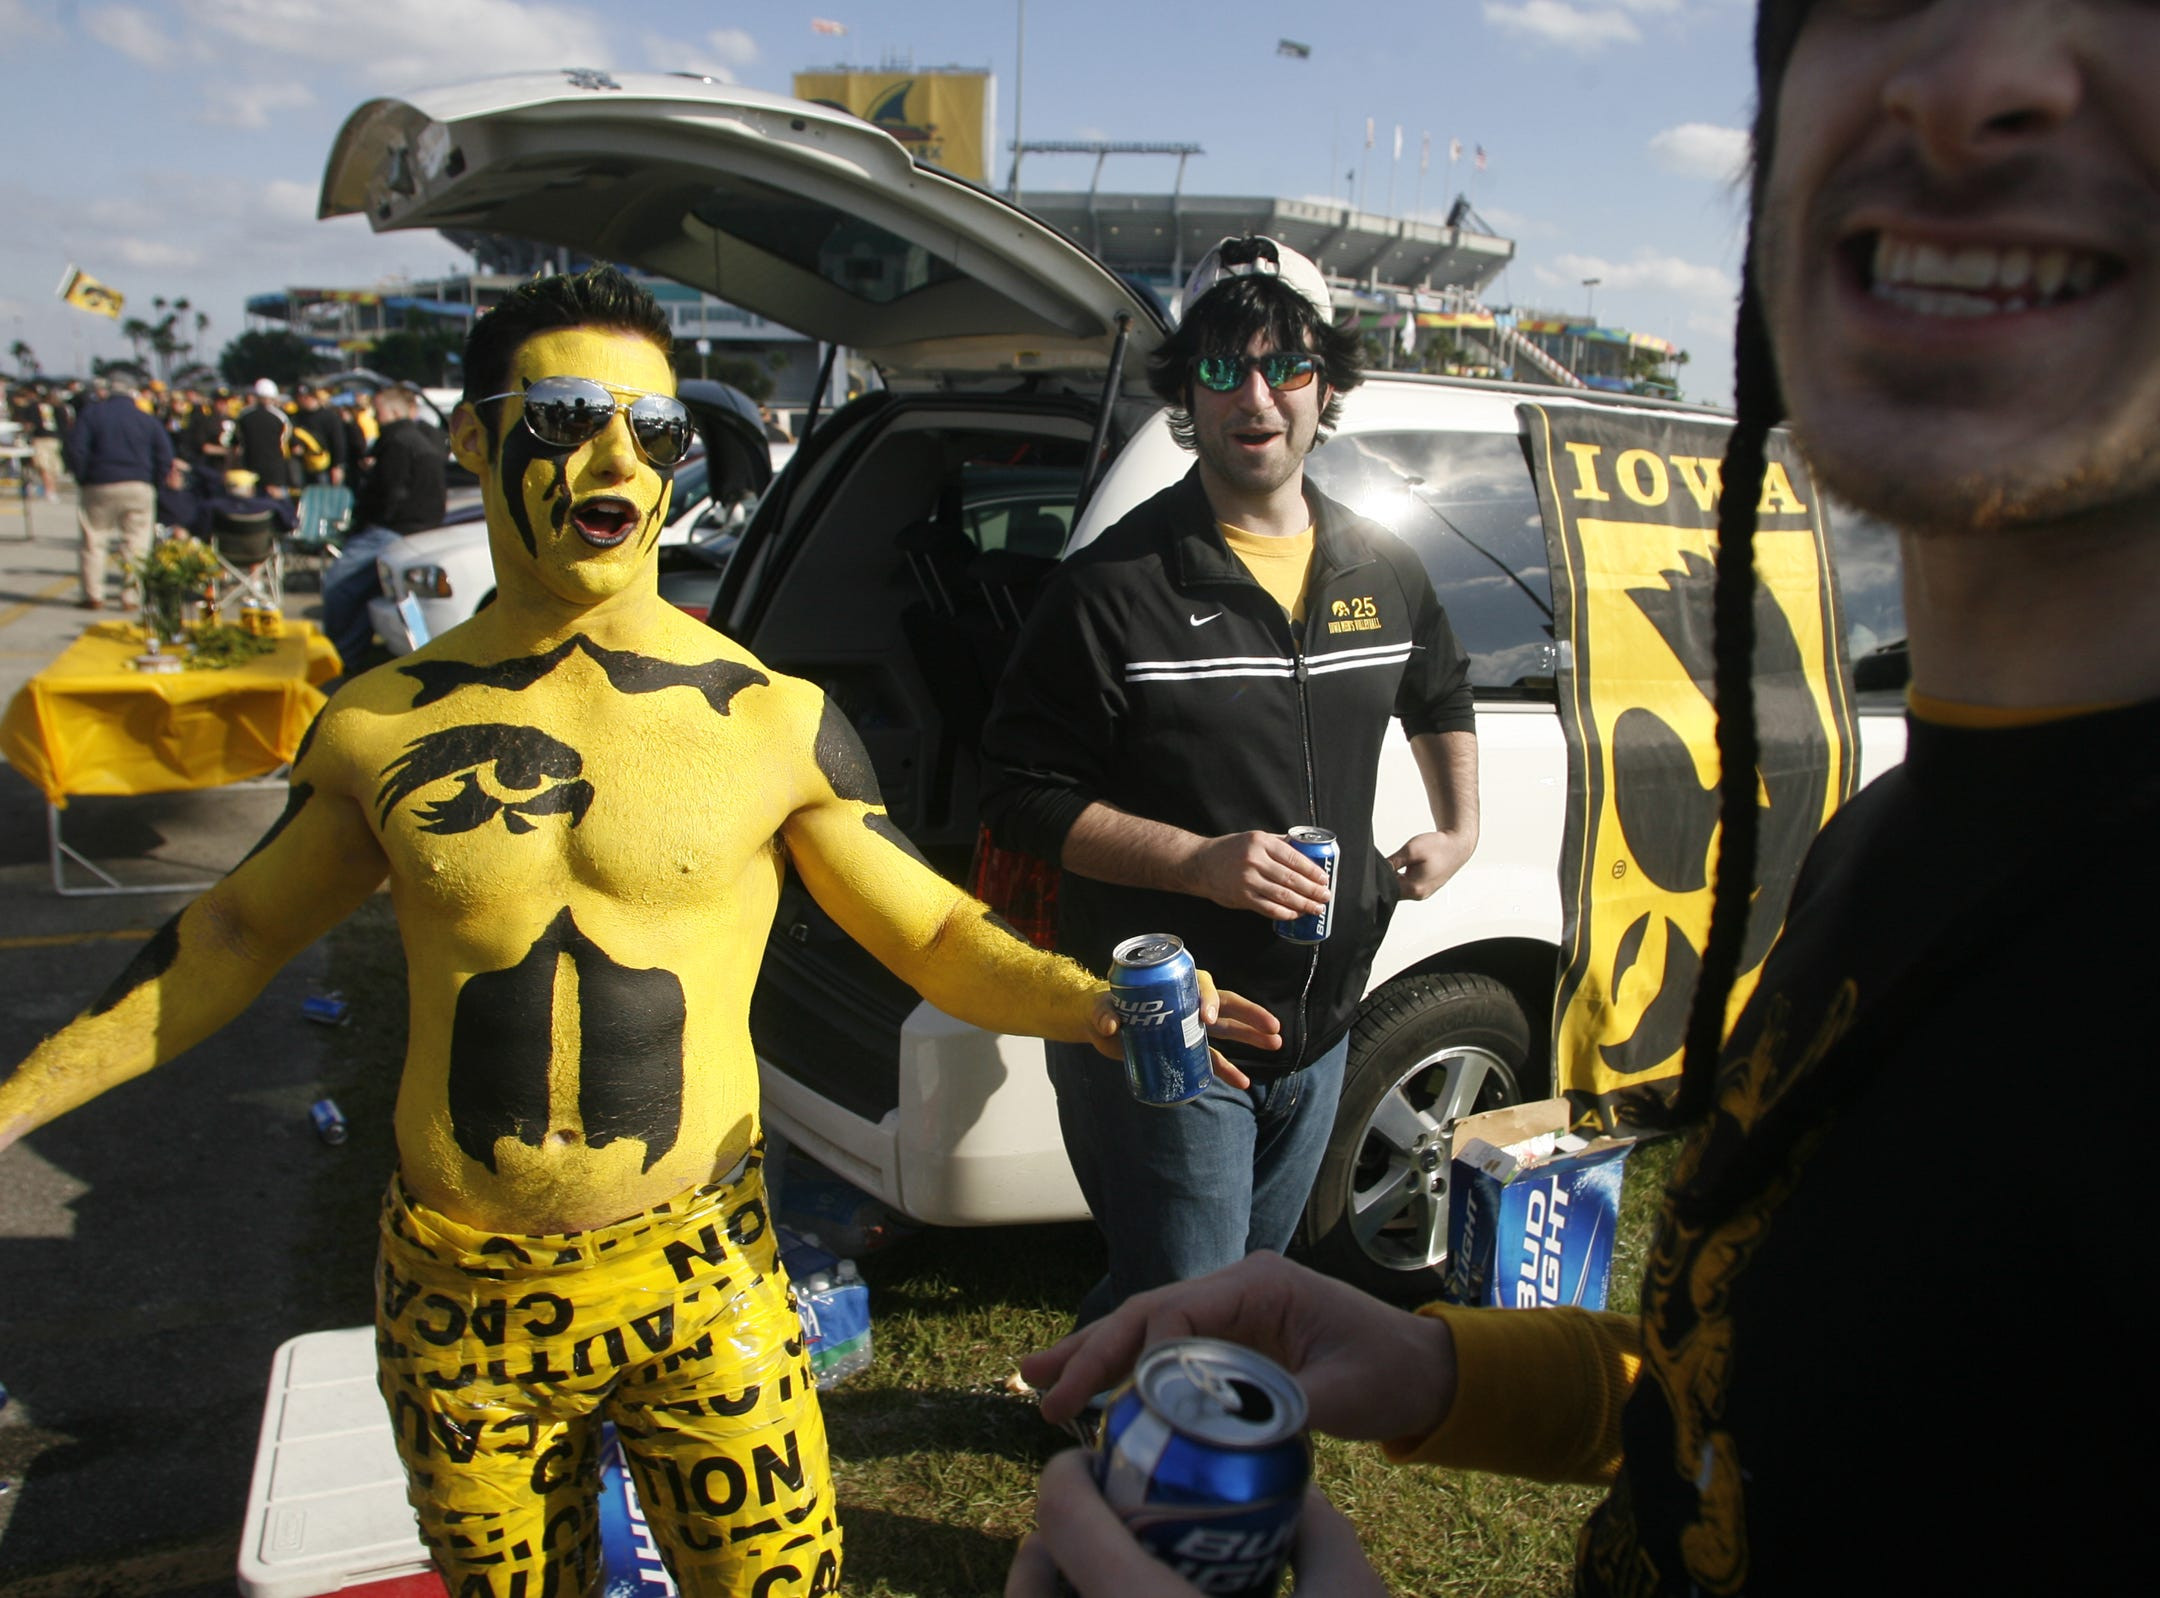 UI senior Ryan McCabe, of Downers Grove, Ill, dons caution tape shorts while tailgating before the start of the Orange Bowl, Tuesday, Jan. 5, 2010, at LandShark Stadium, in Miami Gardens, Fl.